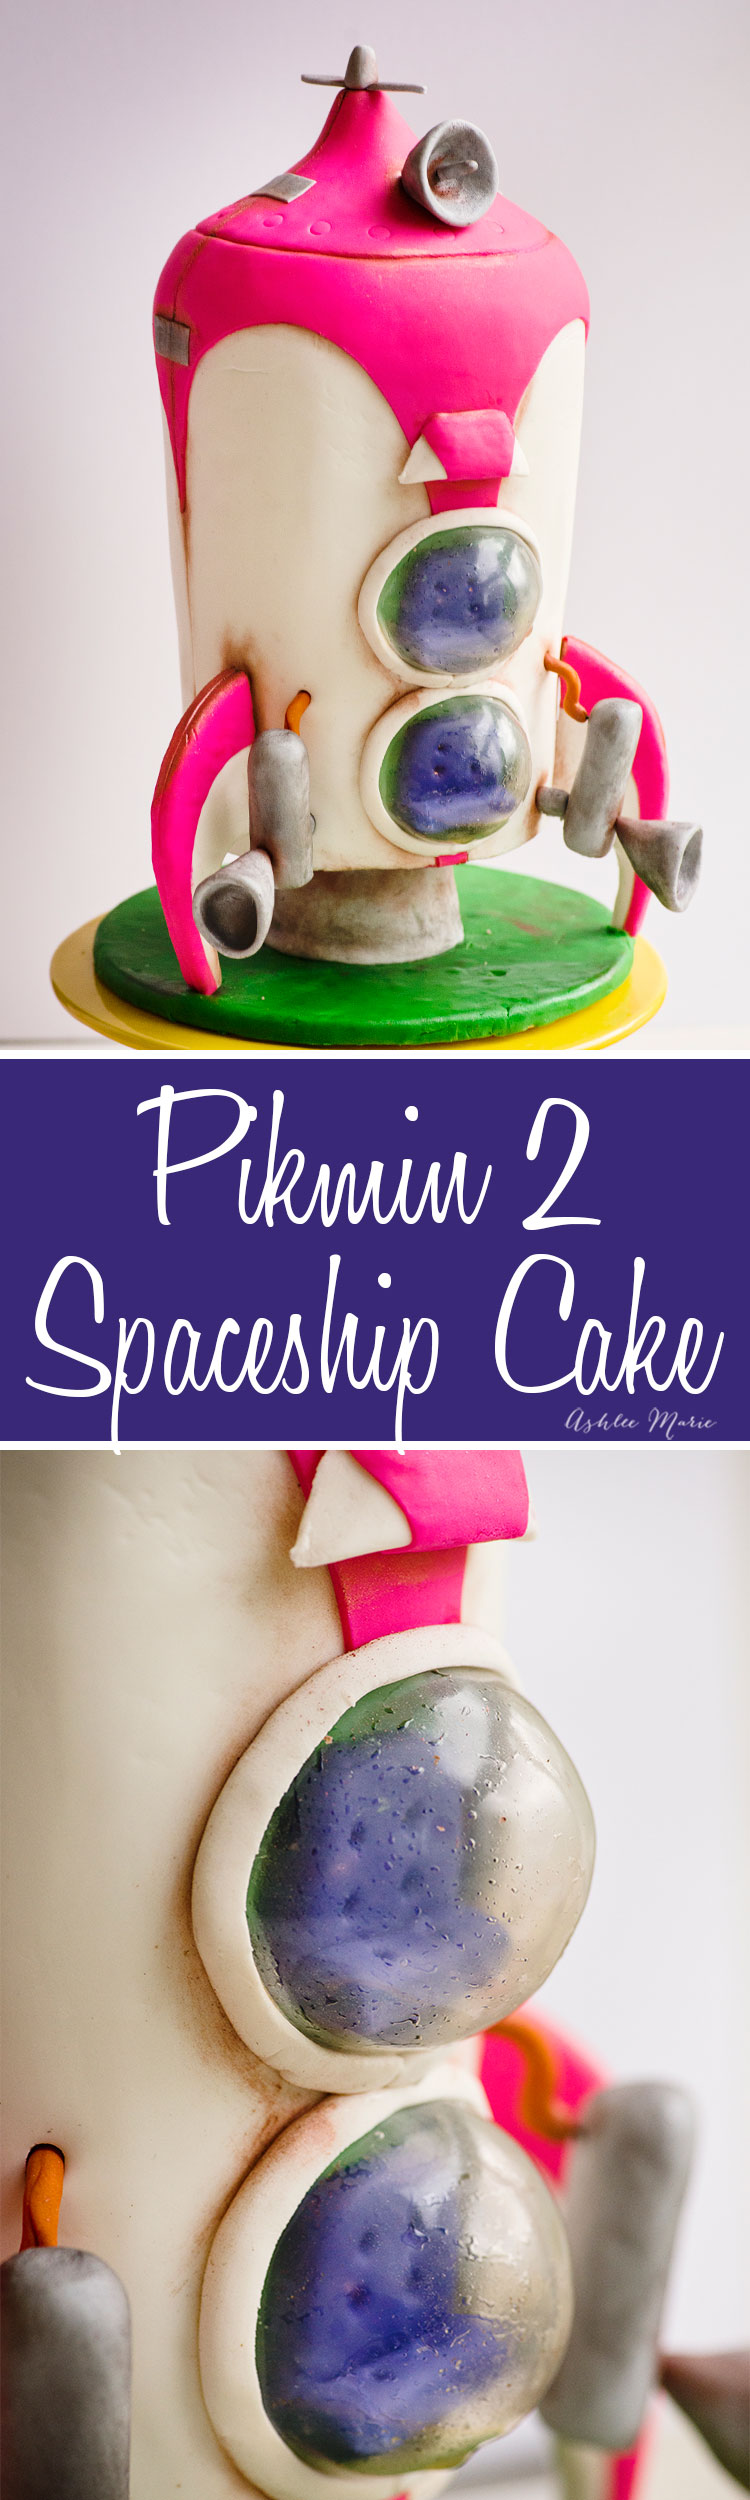 this pikmin 2 spaceship cake was for my son's birthday party